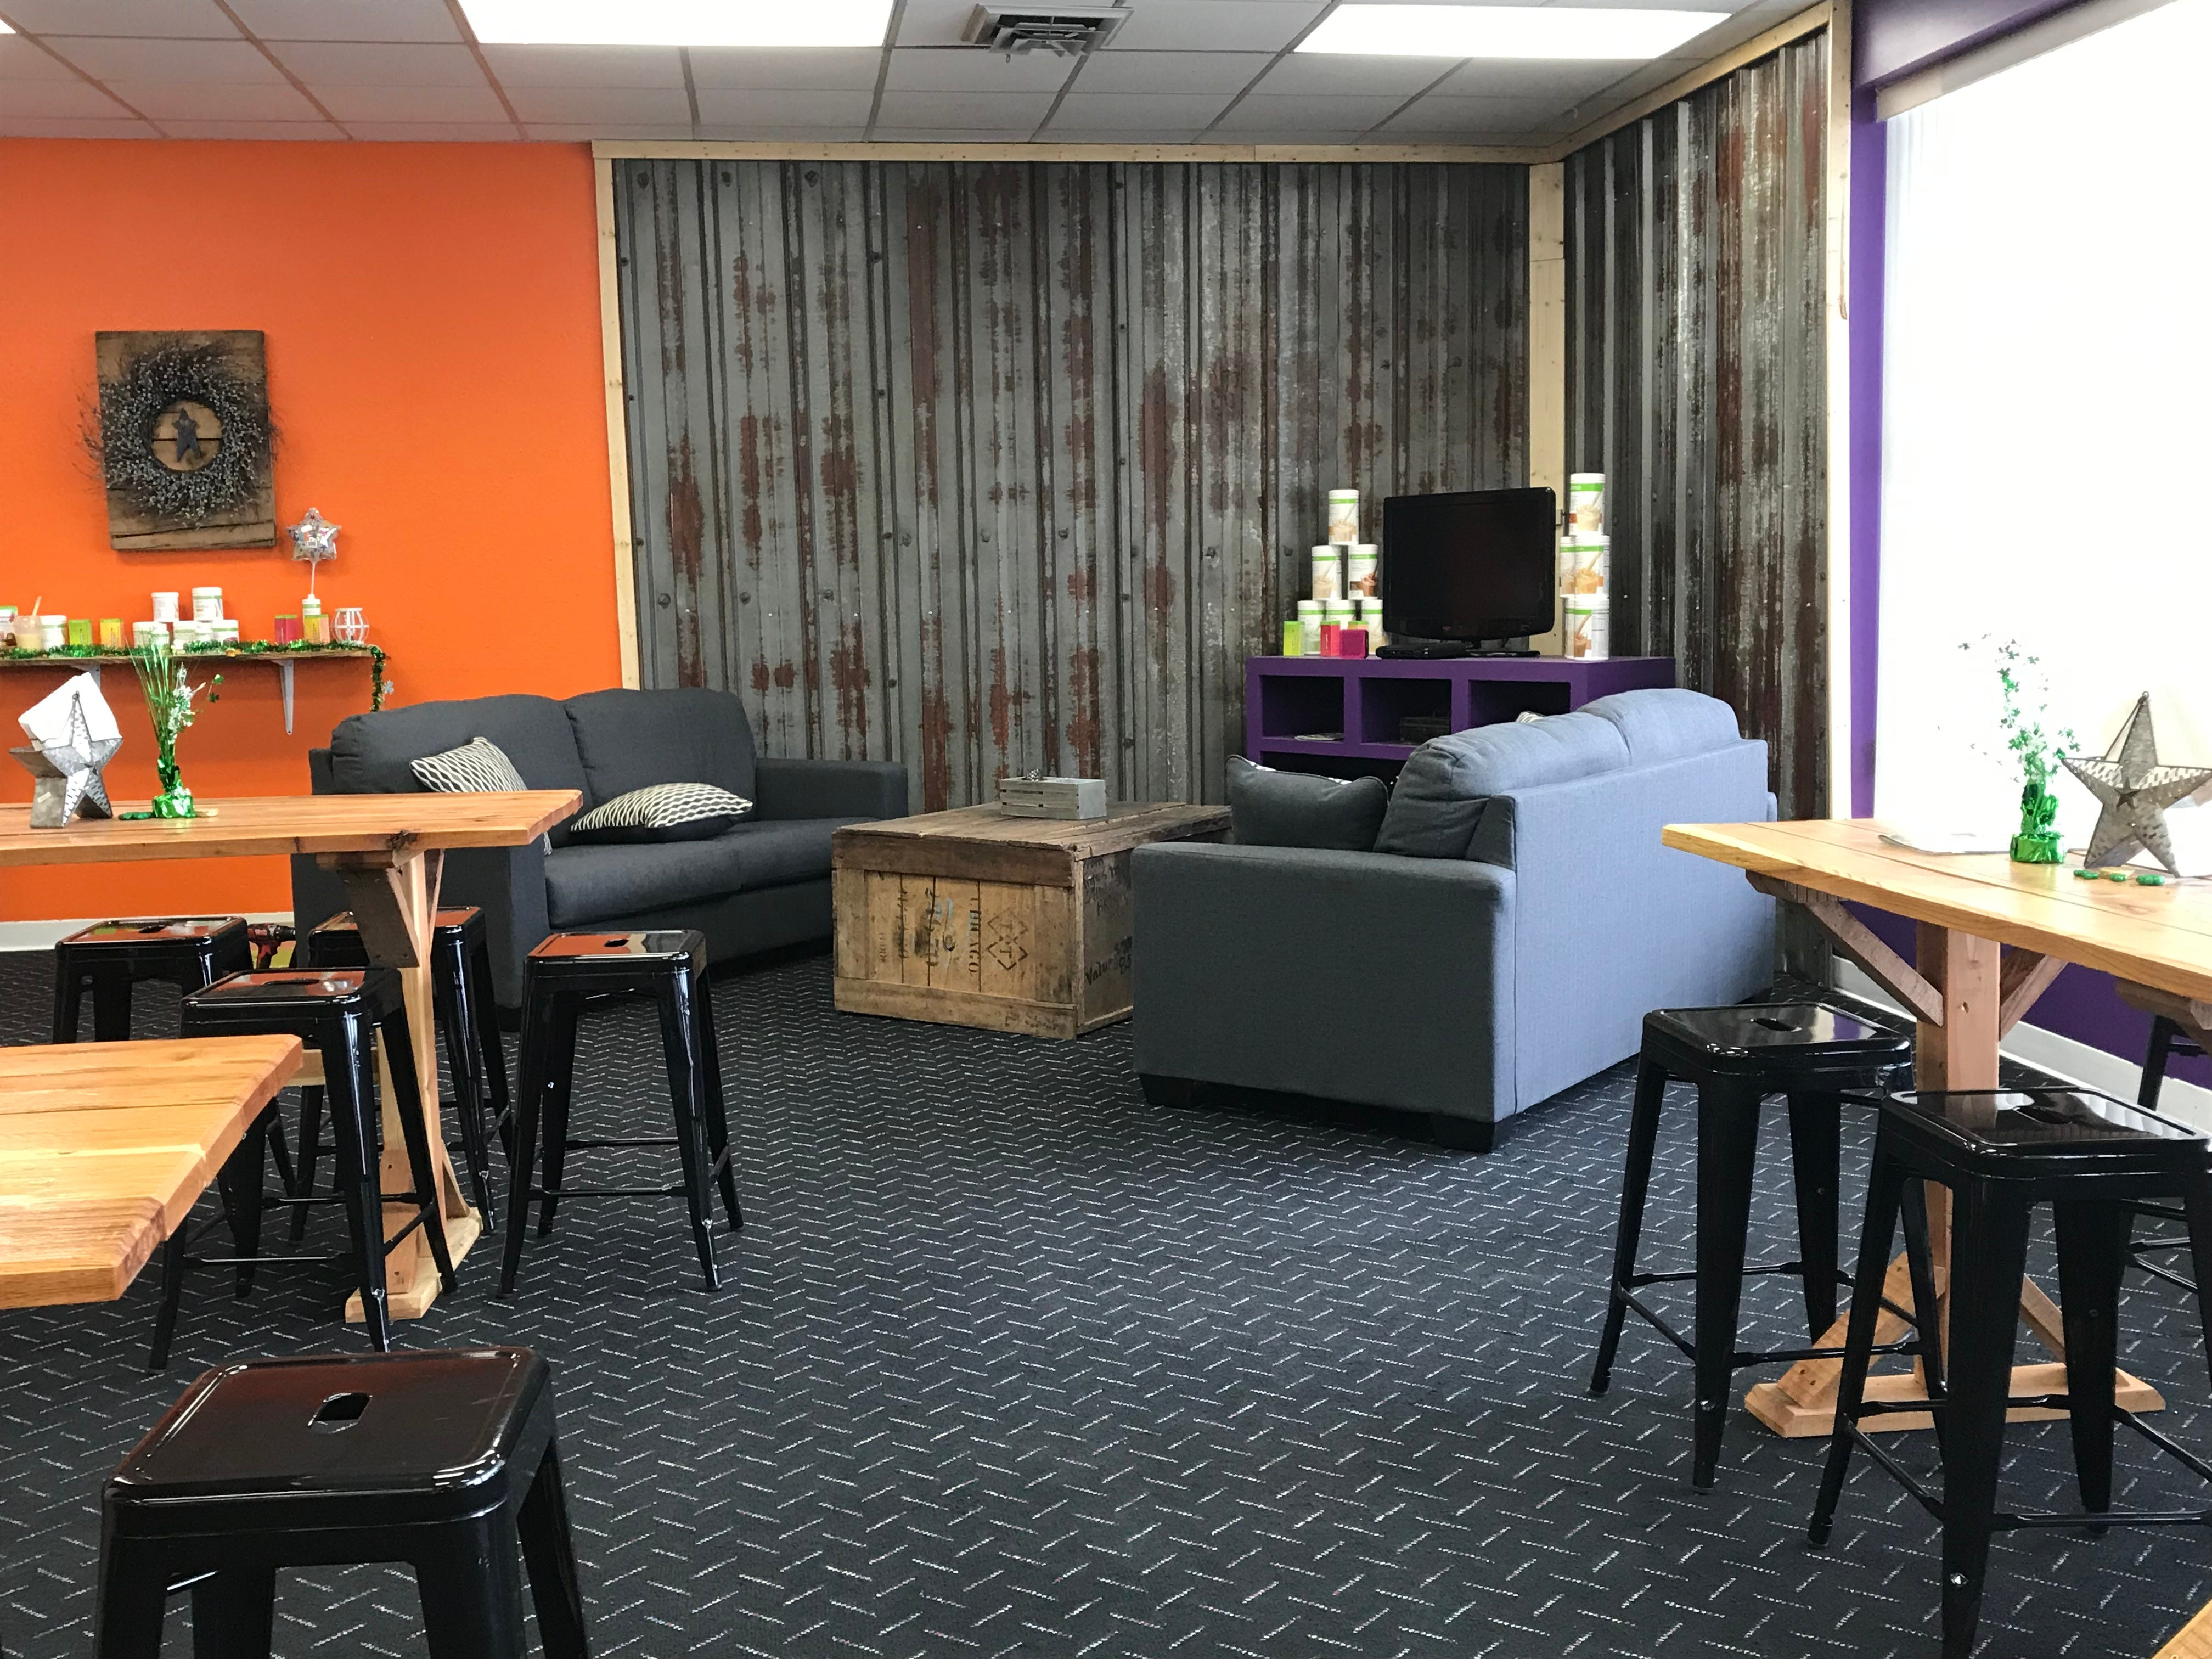 Customers have a variety of seating options at Motav8 Nutrition.